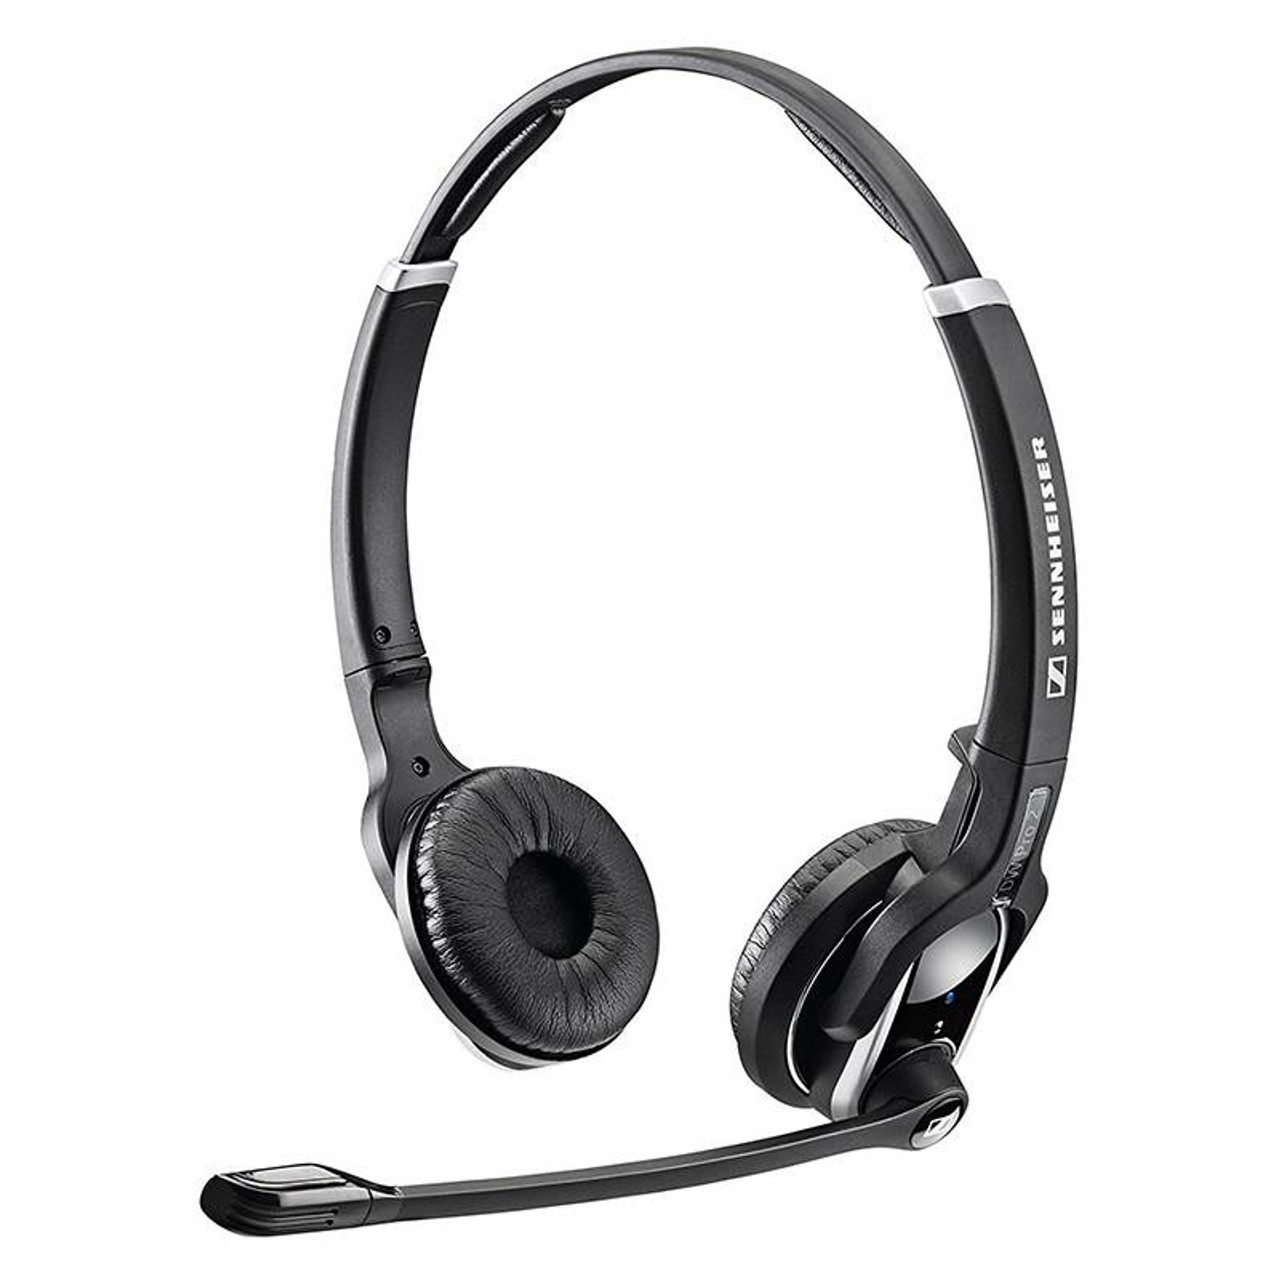 Image for Sennheiser DW 30 HS Replacement Headset CX Computer Superstore